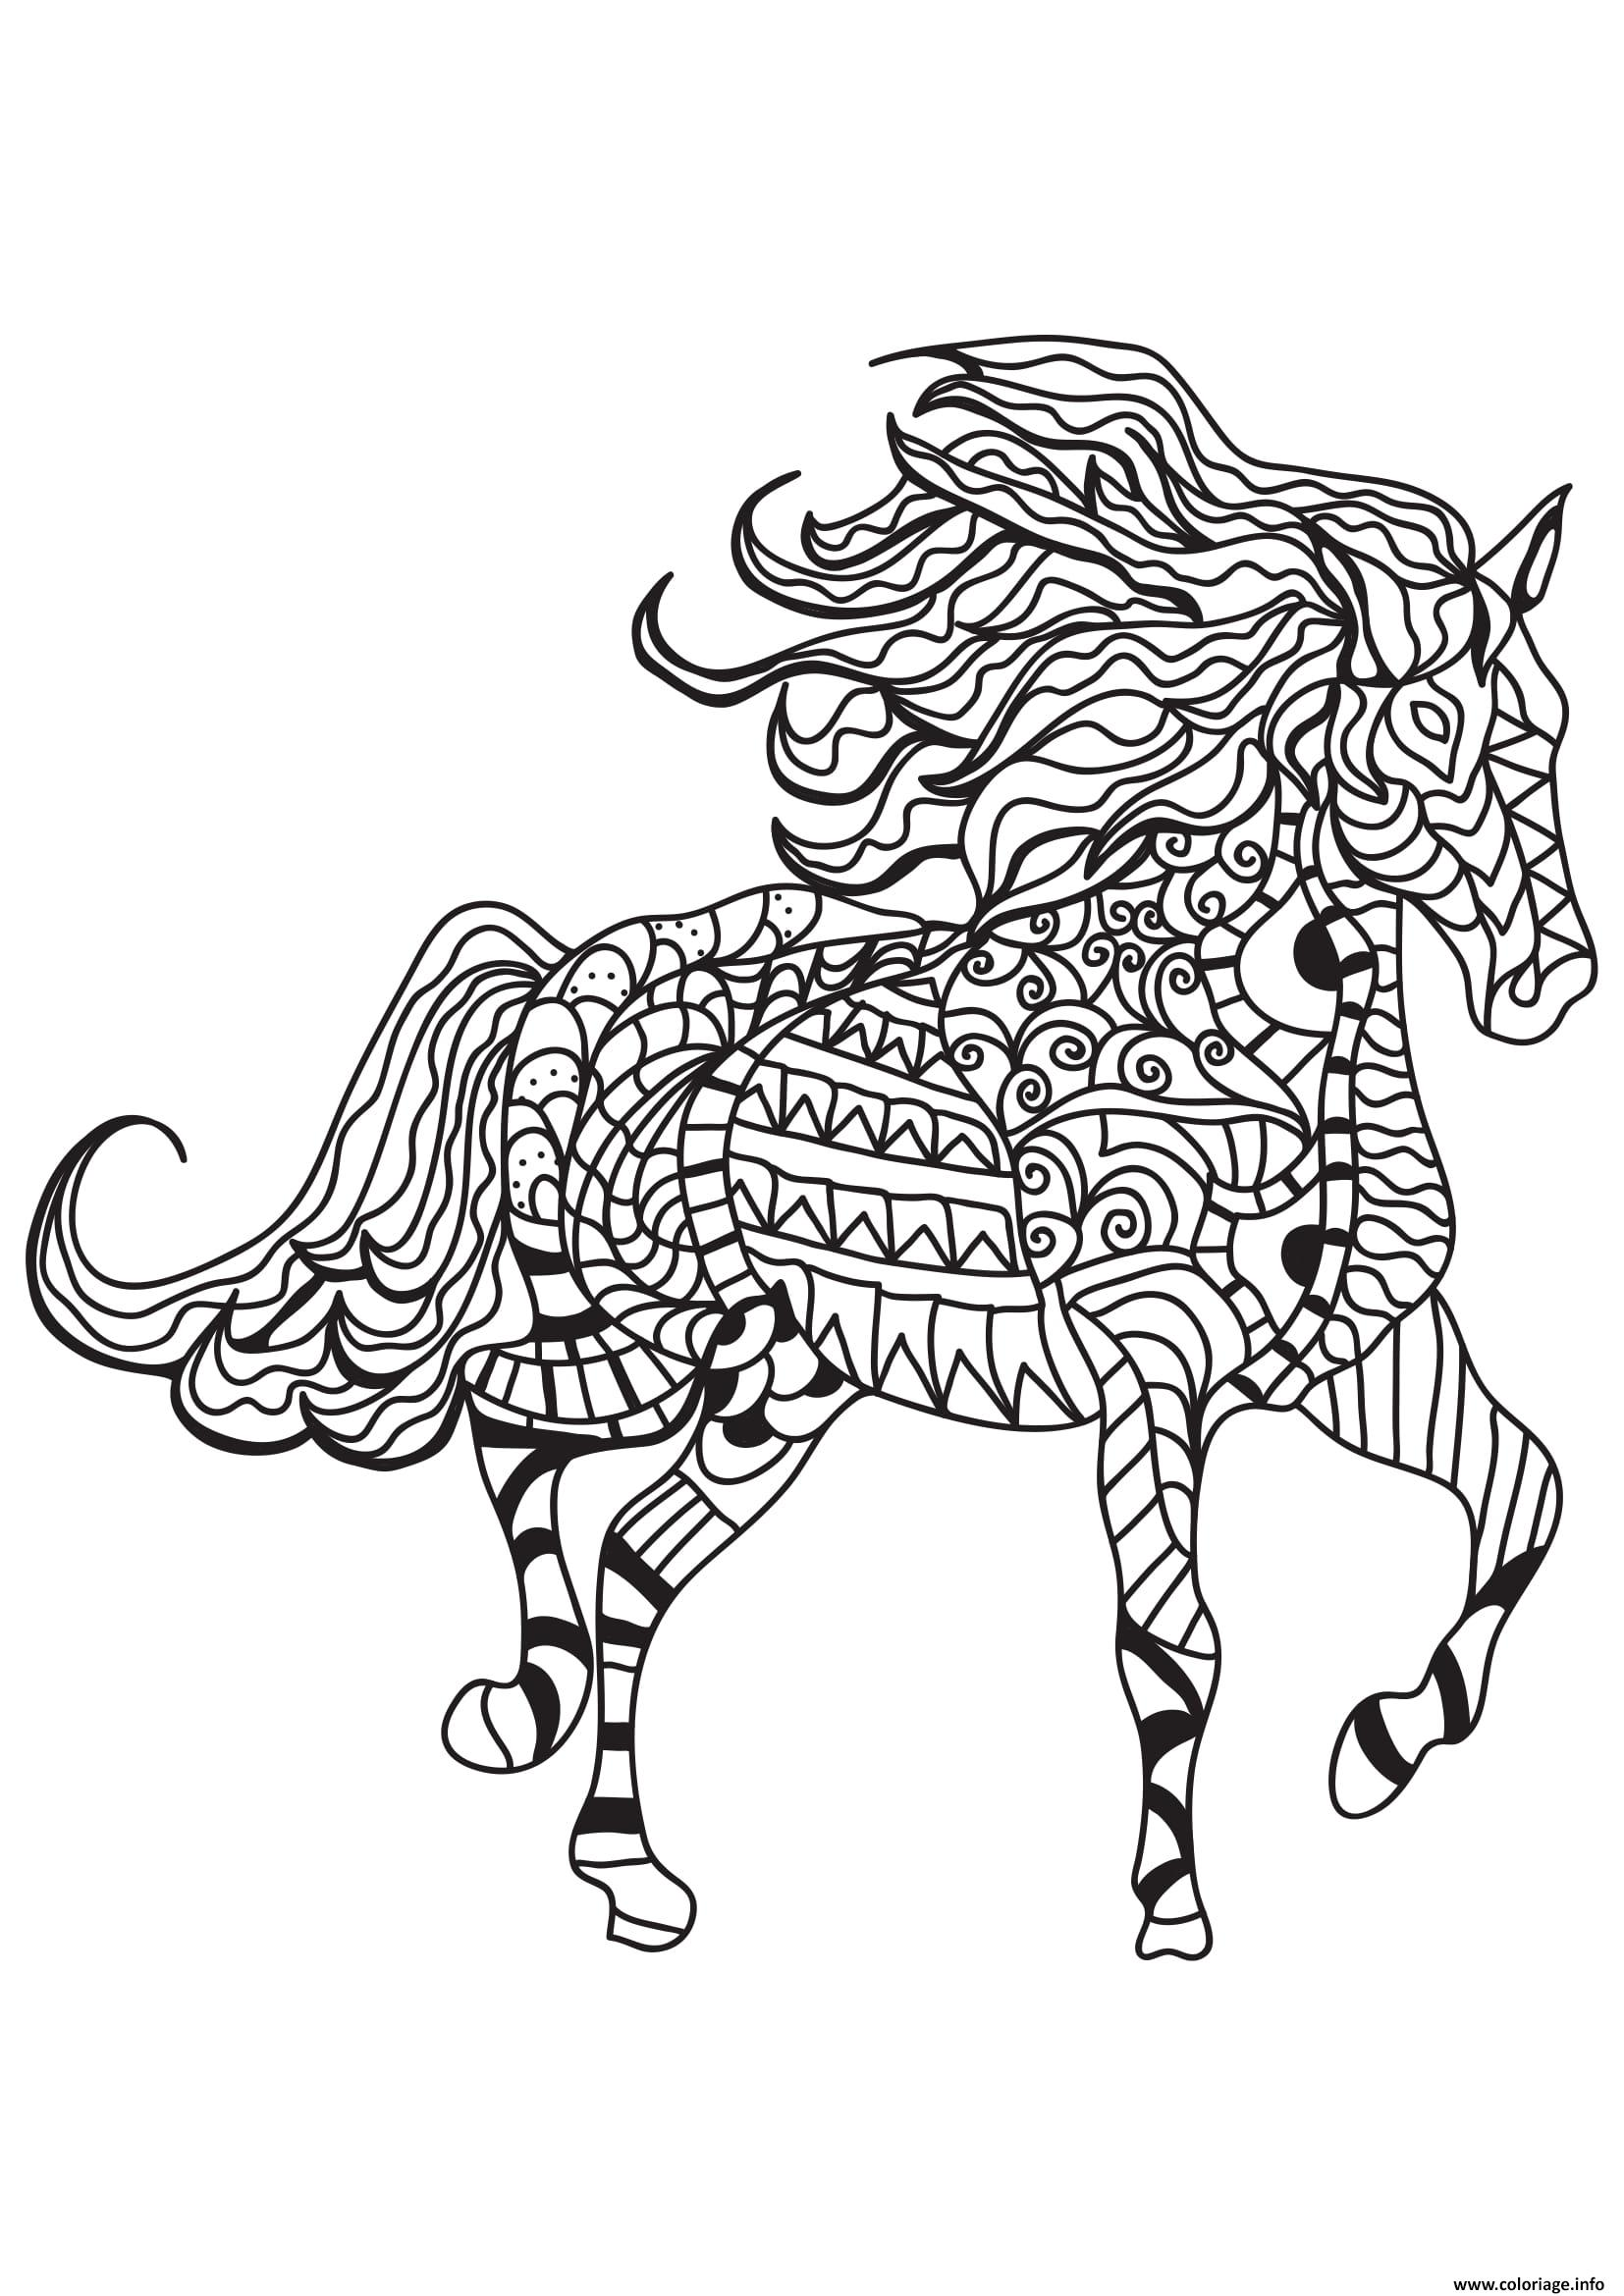 Coloriage Cheval Zen.Coloriage Adulte Cheval Zentangle 16 Dessin